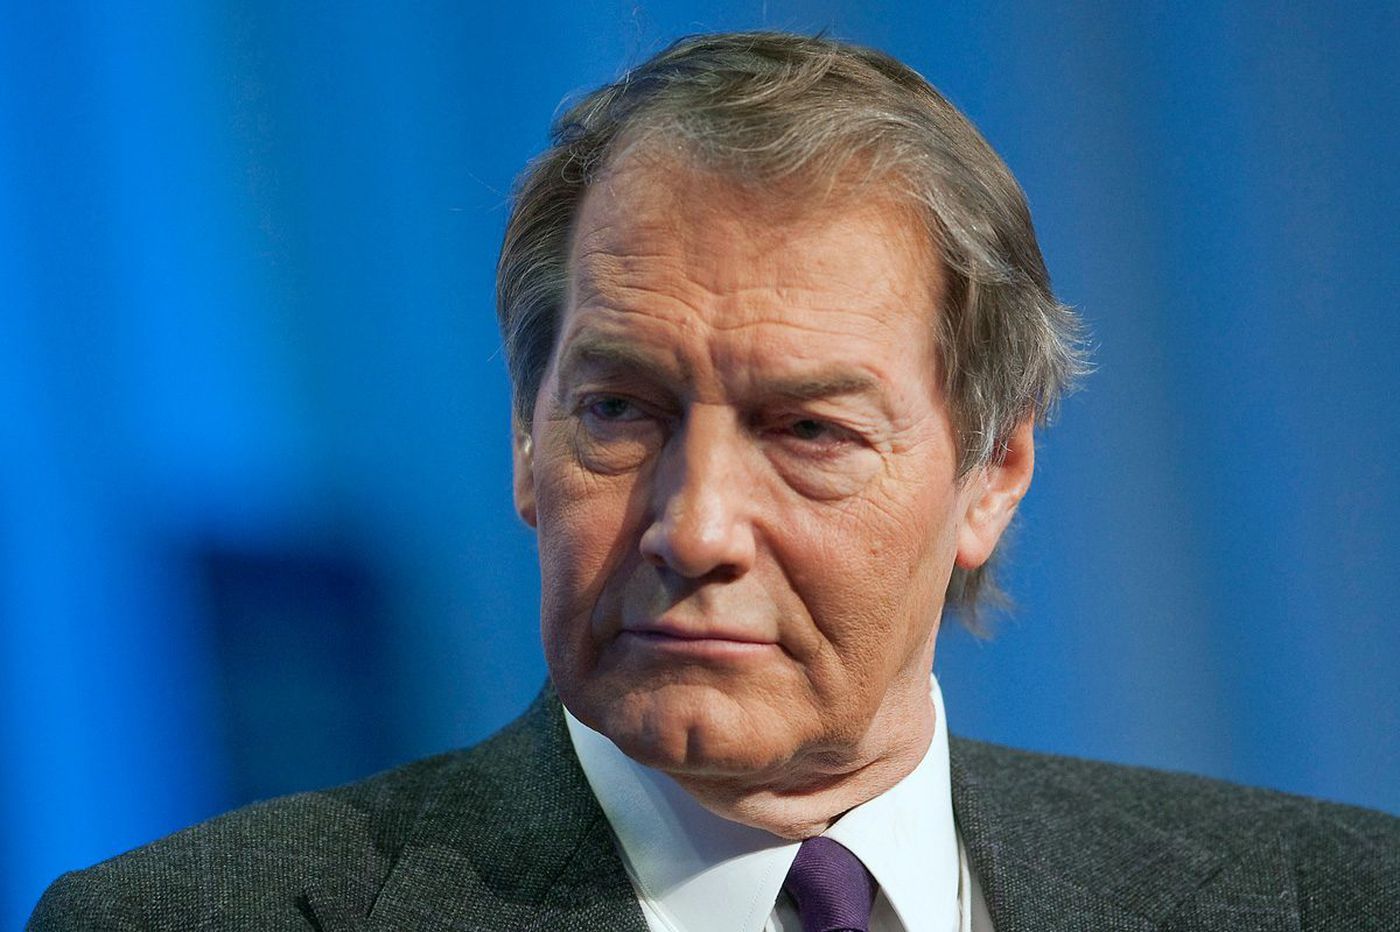 Charlie Rose: The rise and plummet of a man who preached 'character' and 'integrity'